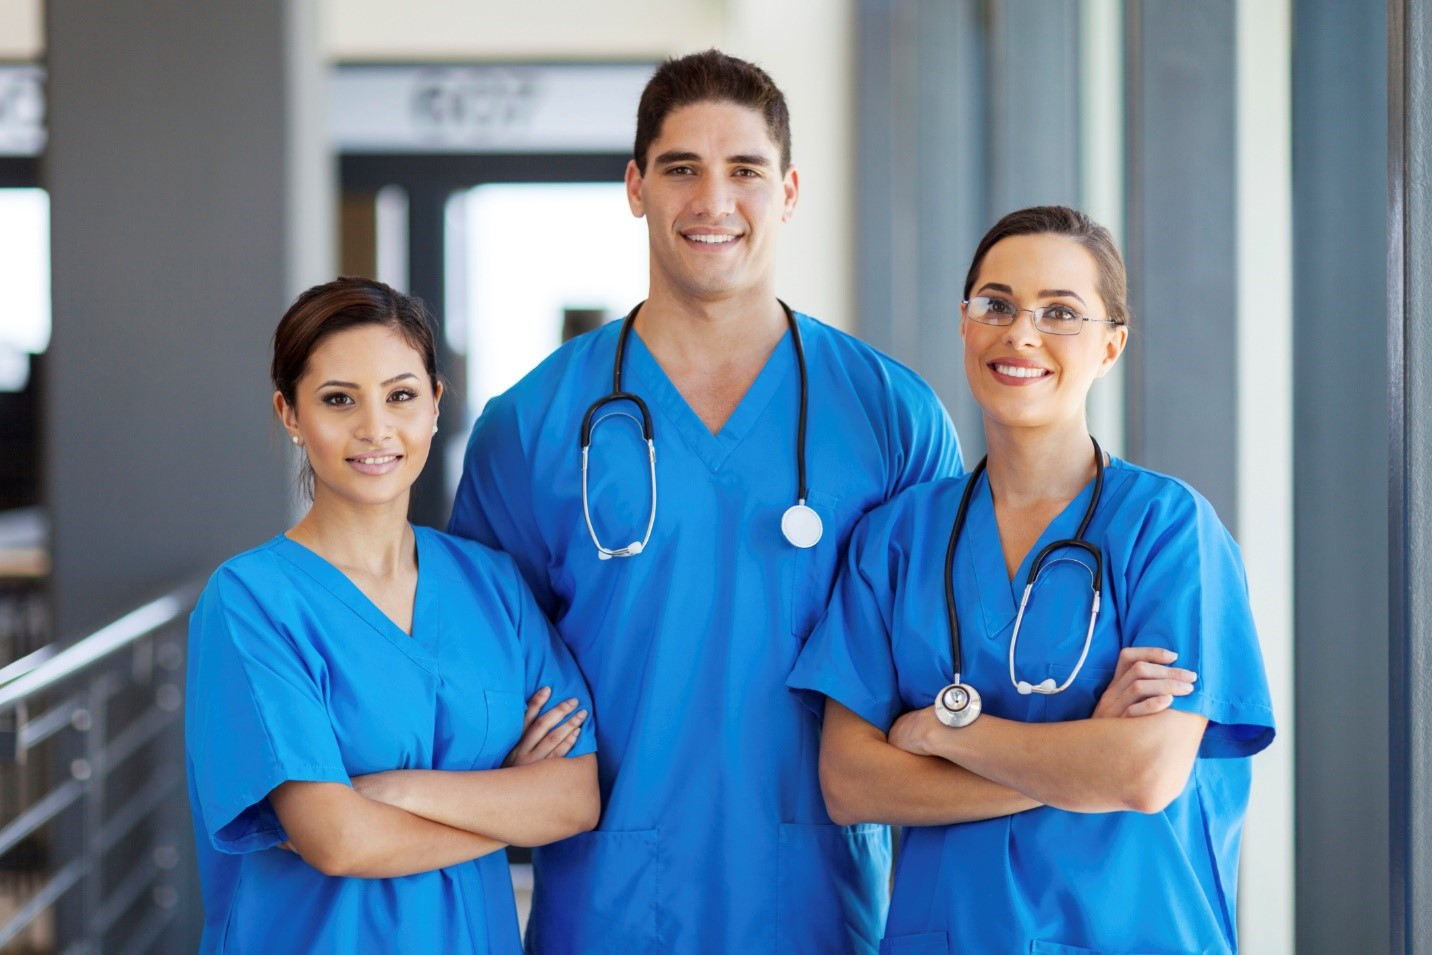 Why To Apply For Nursing In The UK Now